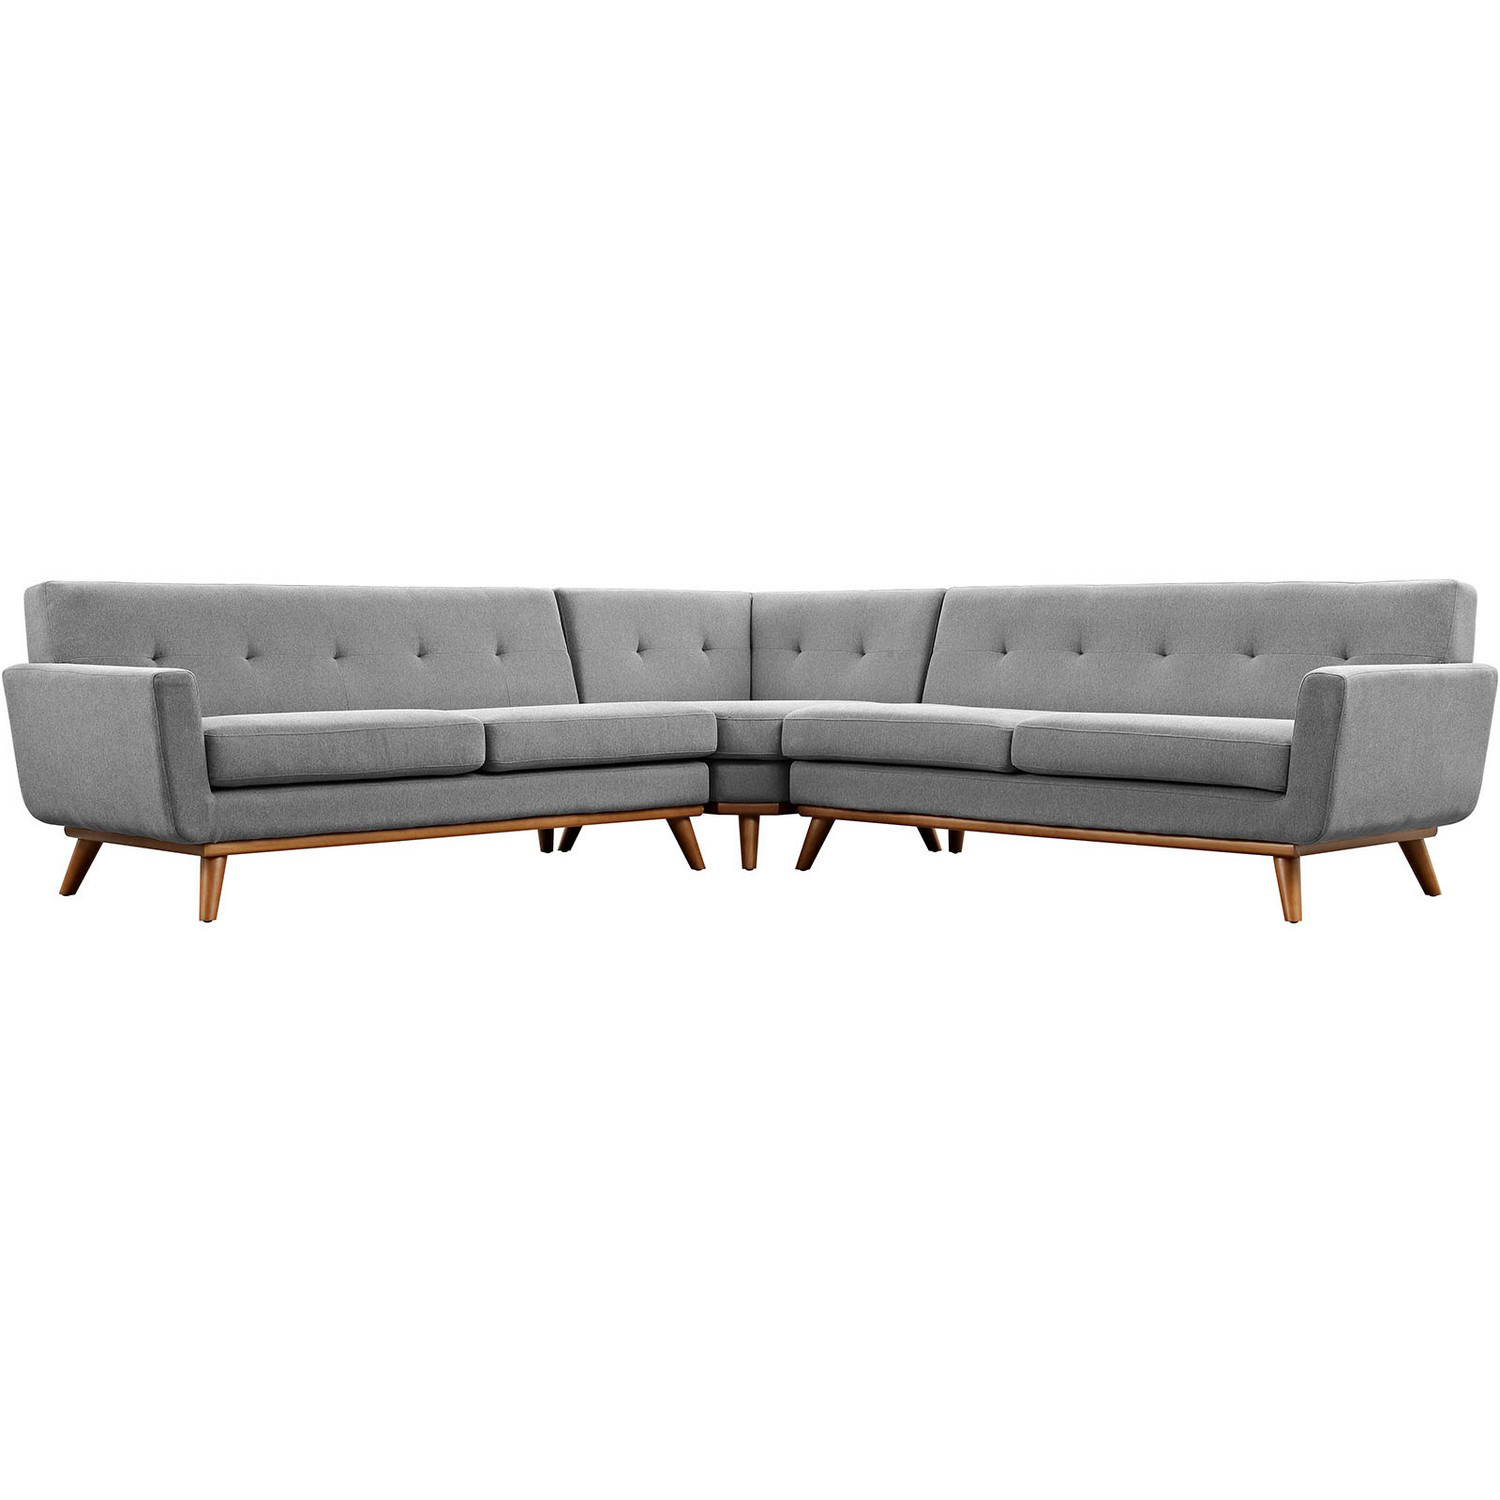 Modway Engage L-Shaped Sectional Sofa - Expectation Gray